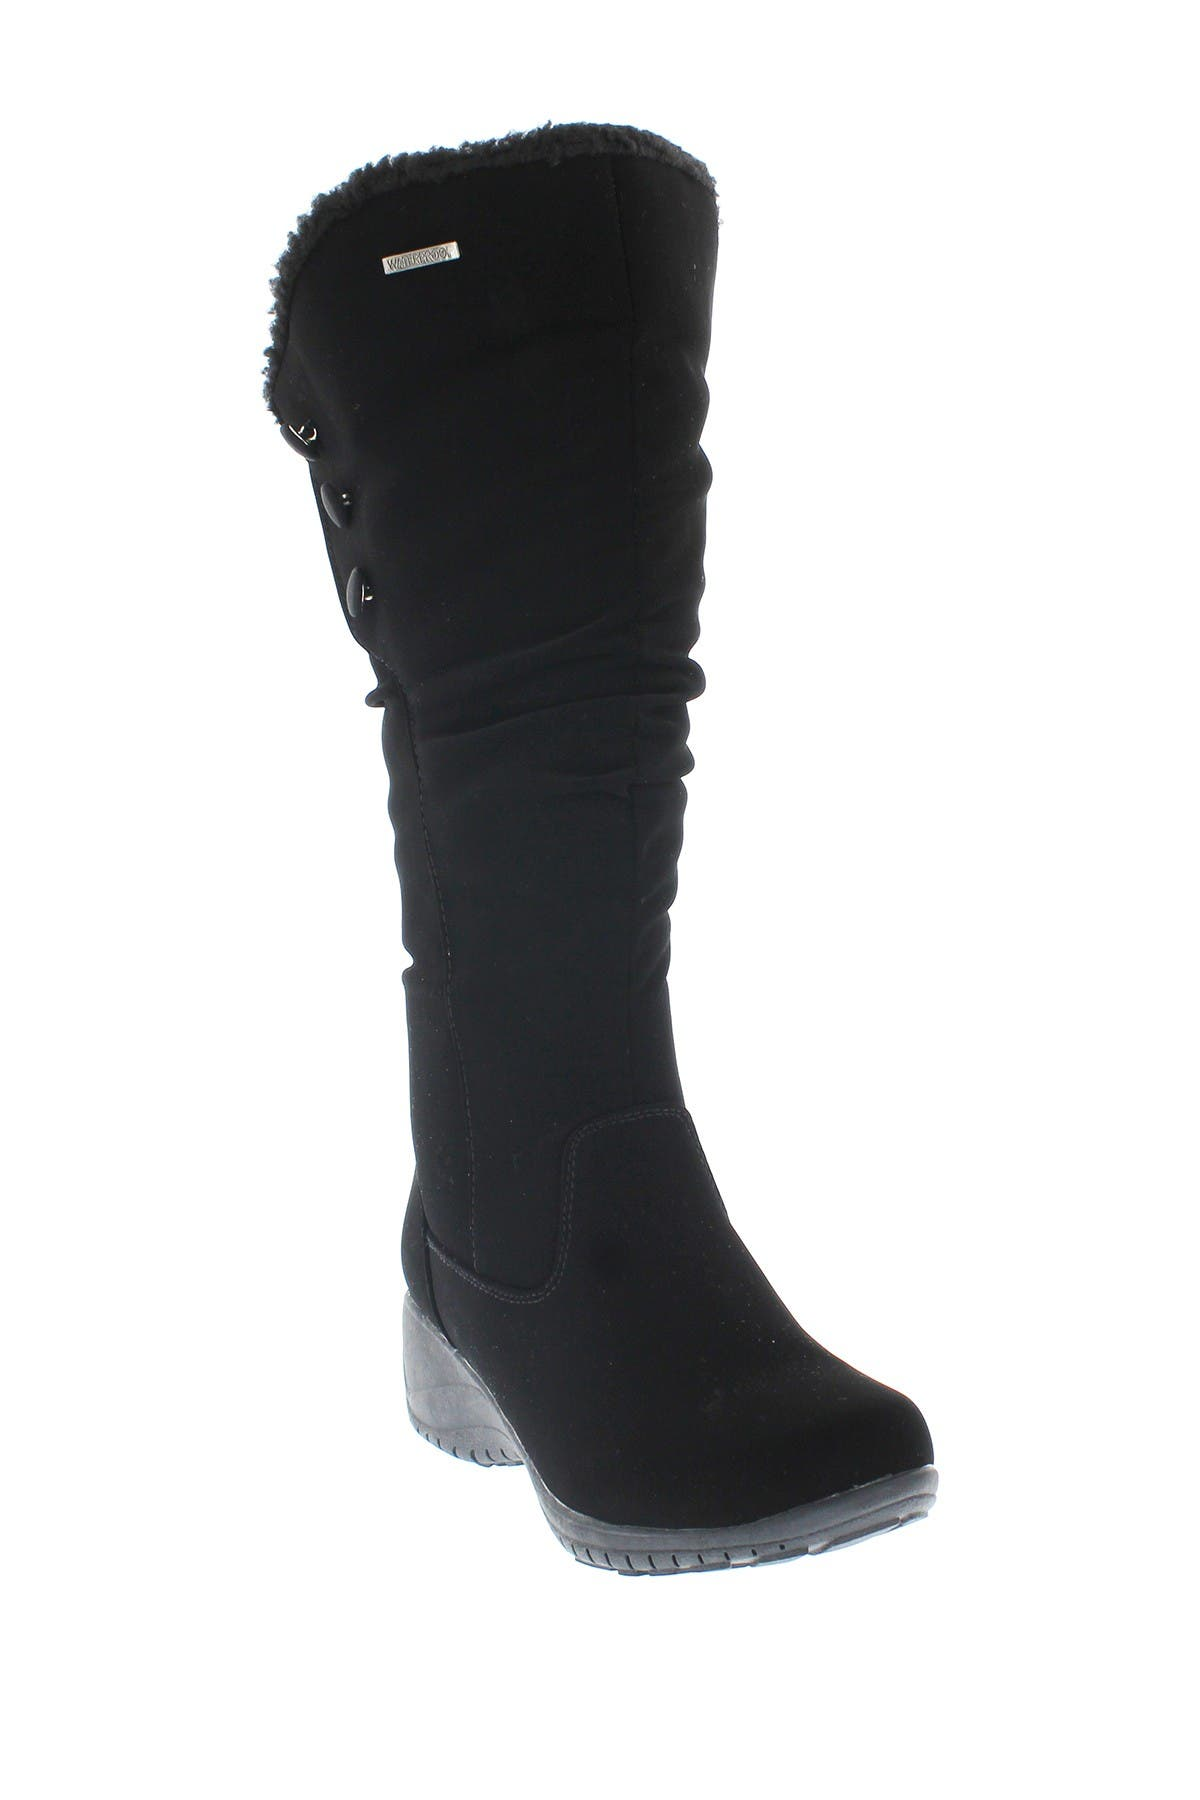 Image of Khombu Aria Faux Fur Waterproof Boot